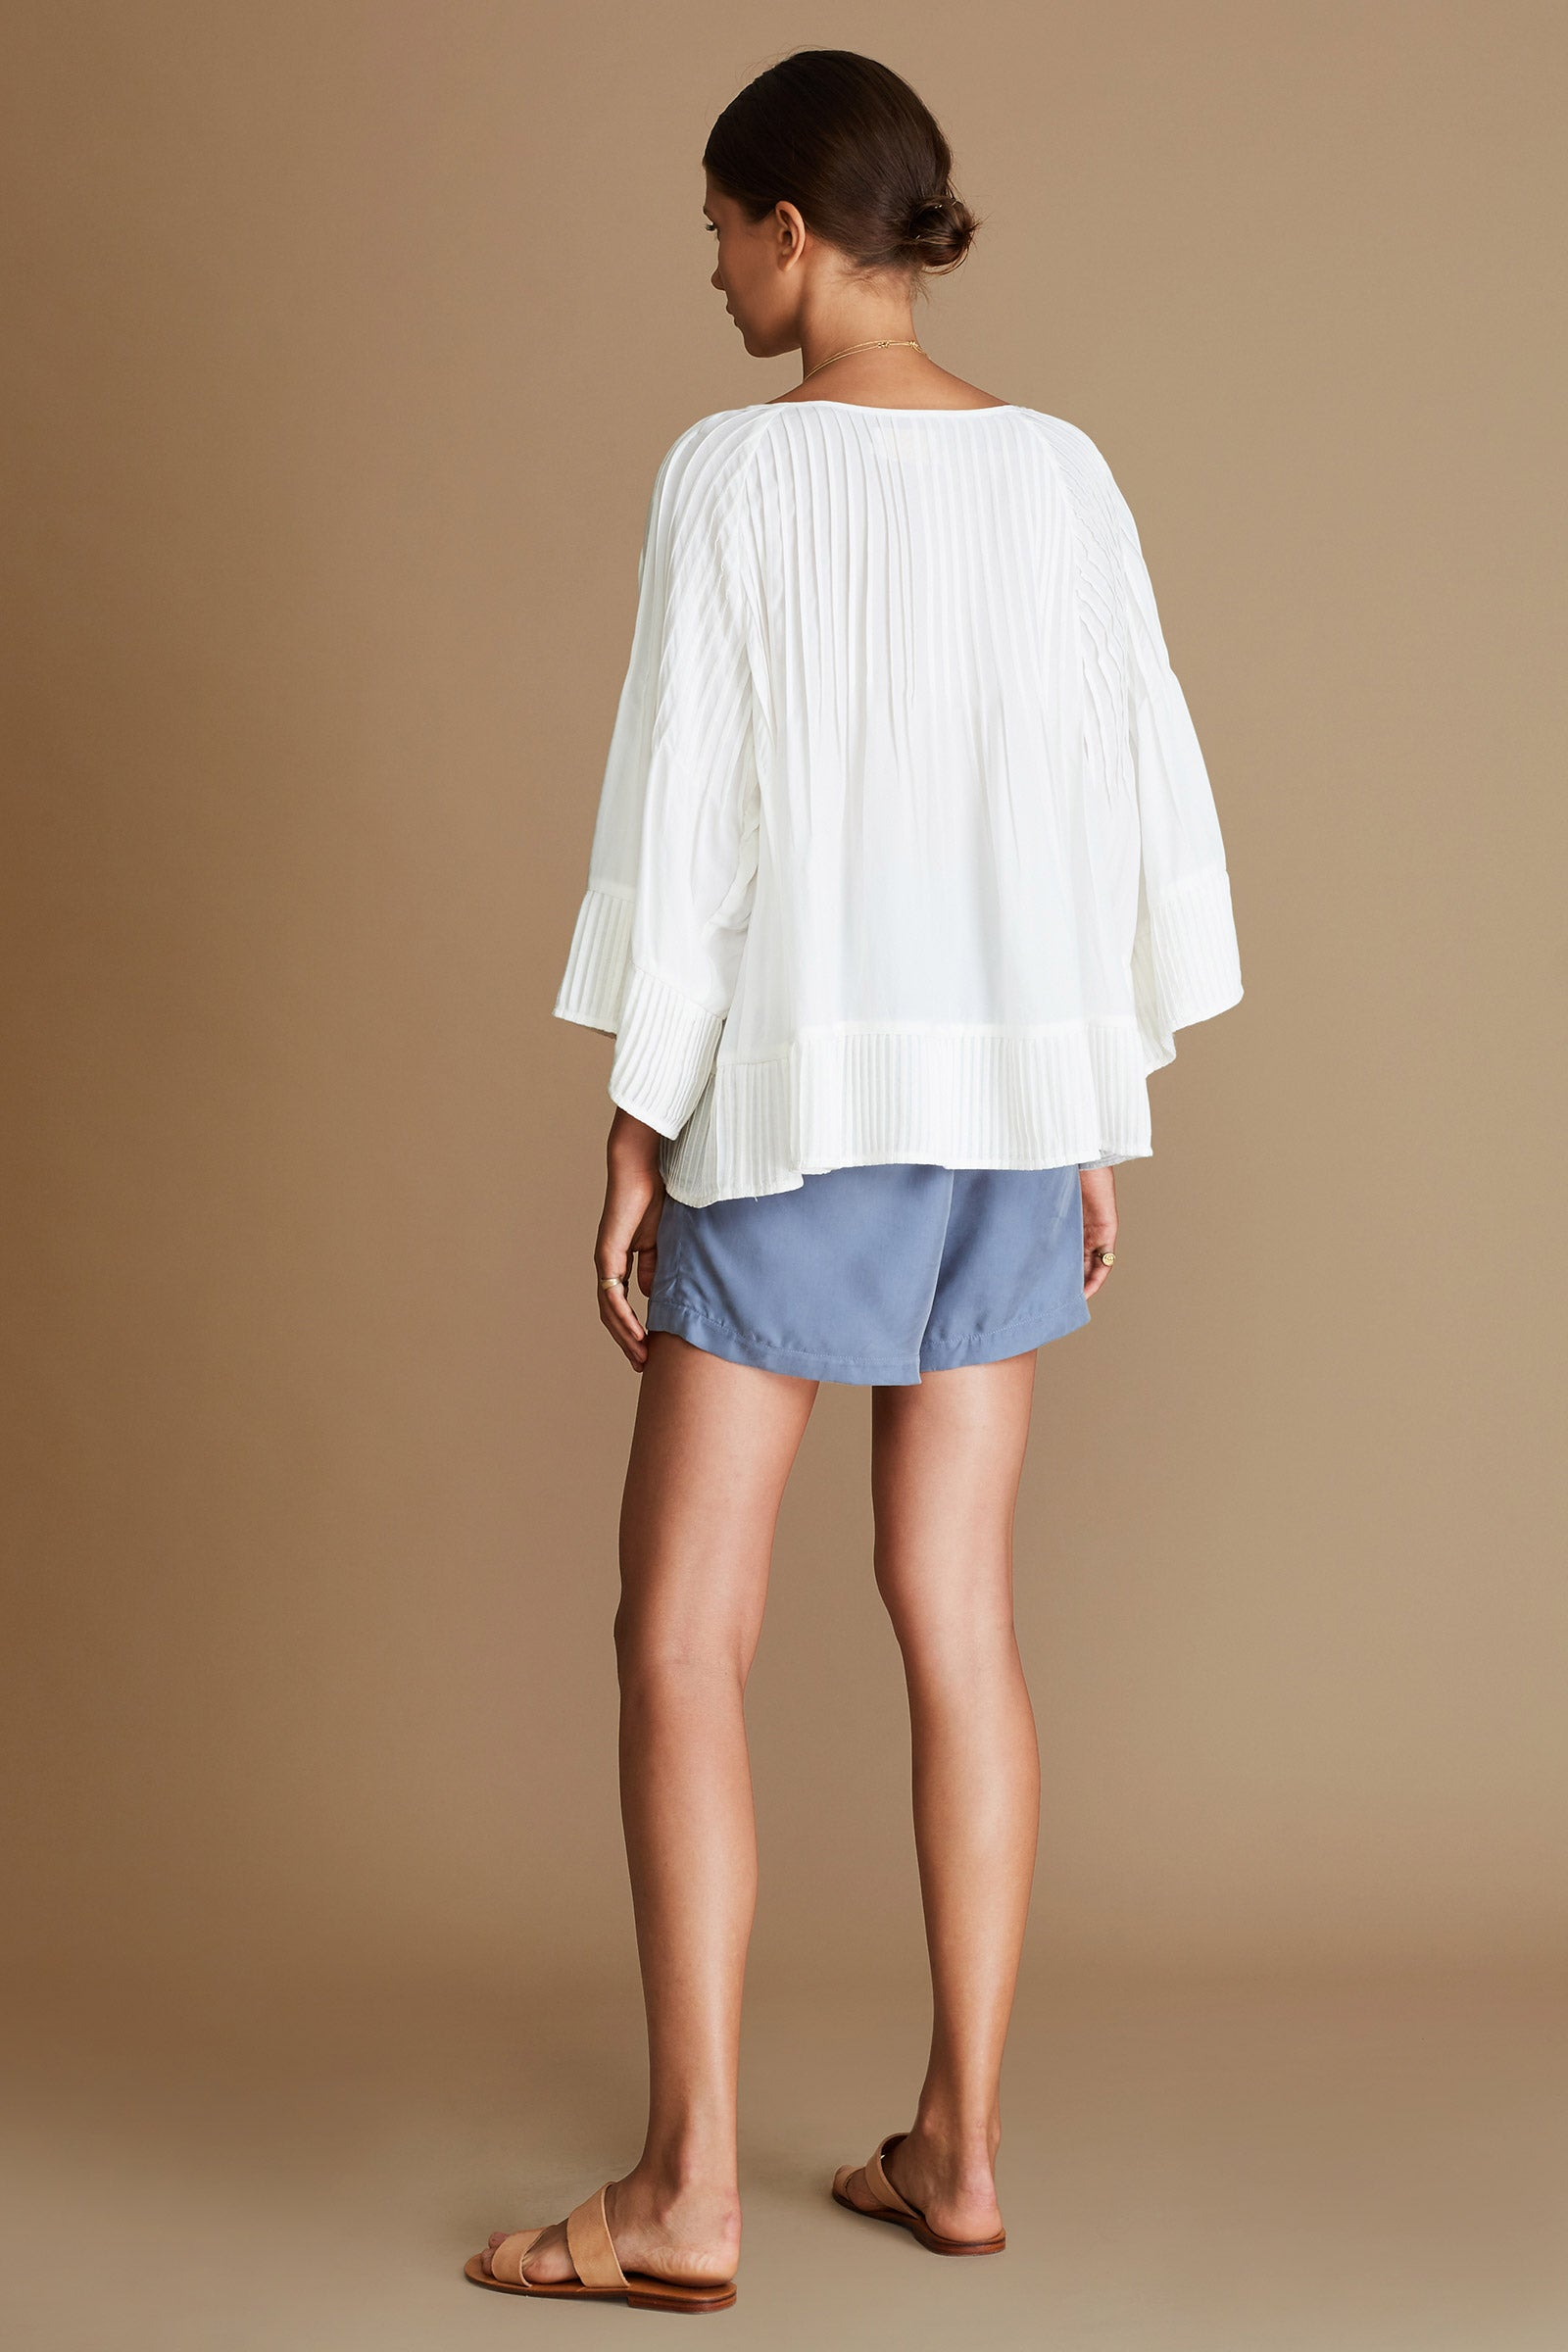 THE ISOLDA BLOUSE